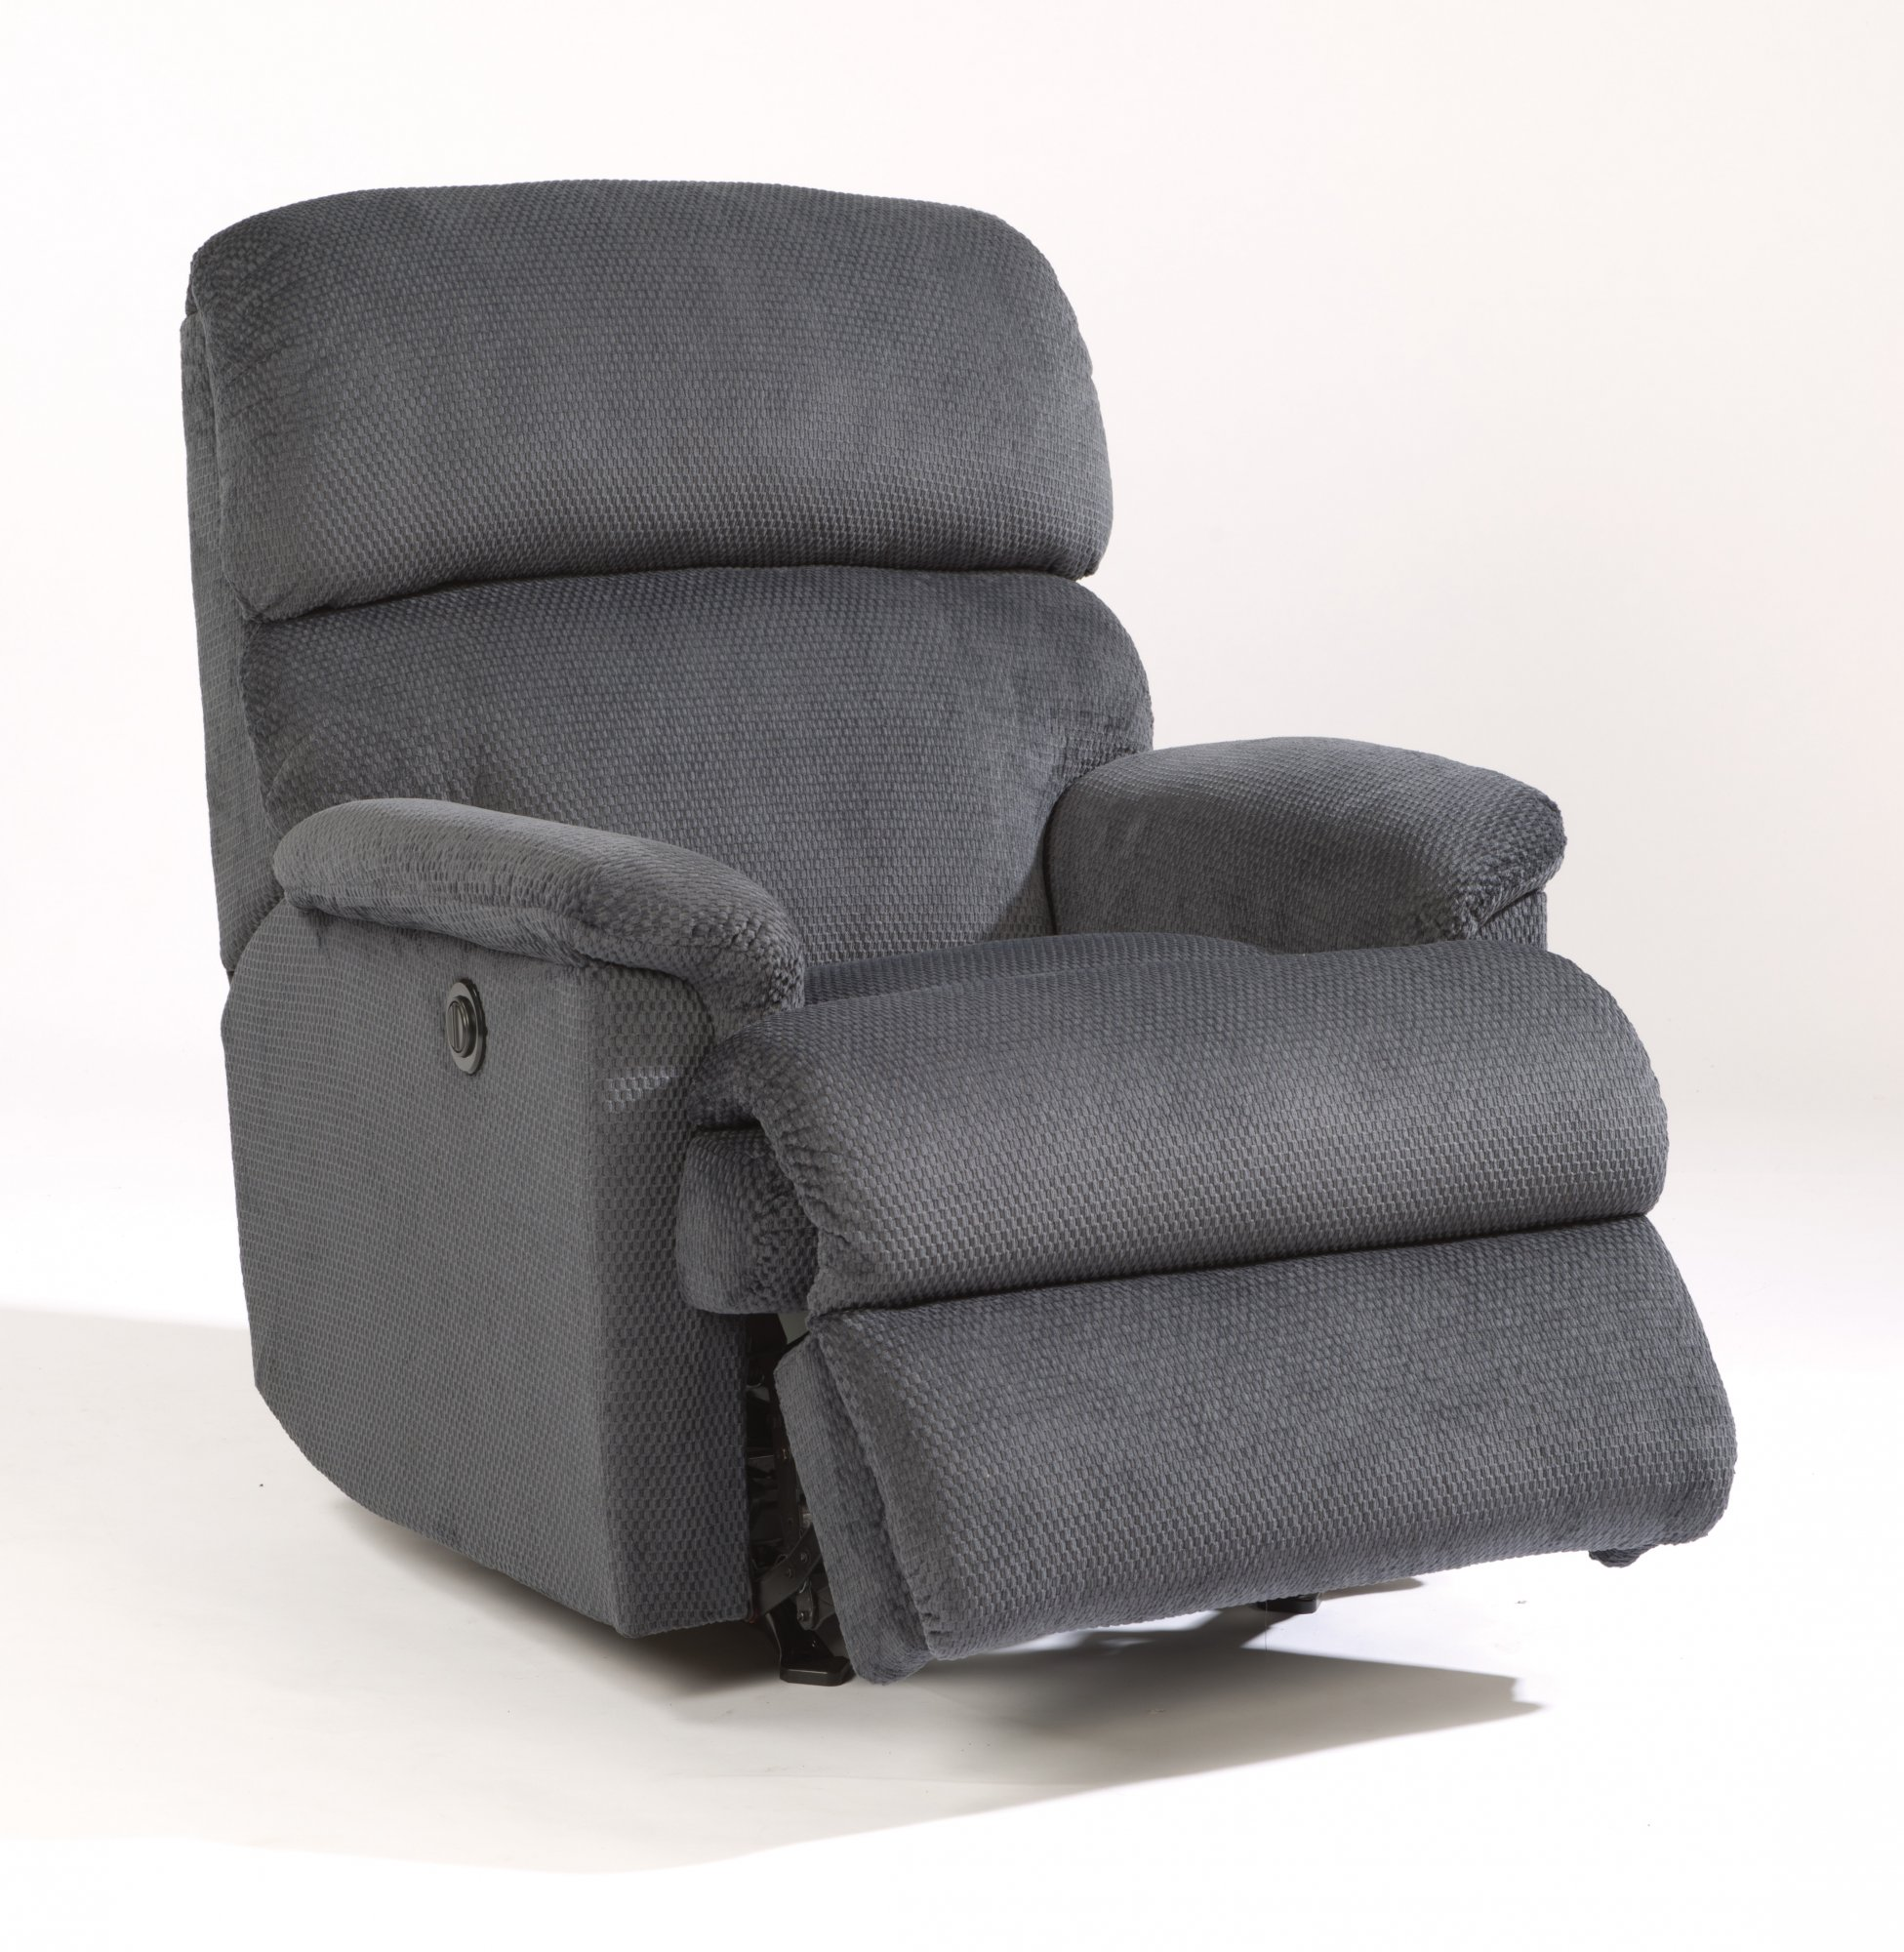 Marvelous Flexsteel 2266 500M Chicago Fabric Power Recliner Caraccident5 Cool Chair Designs And Ideas Caraccident5Info